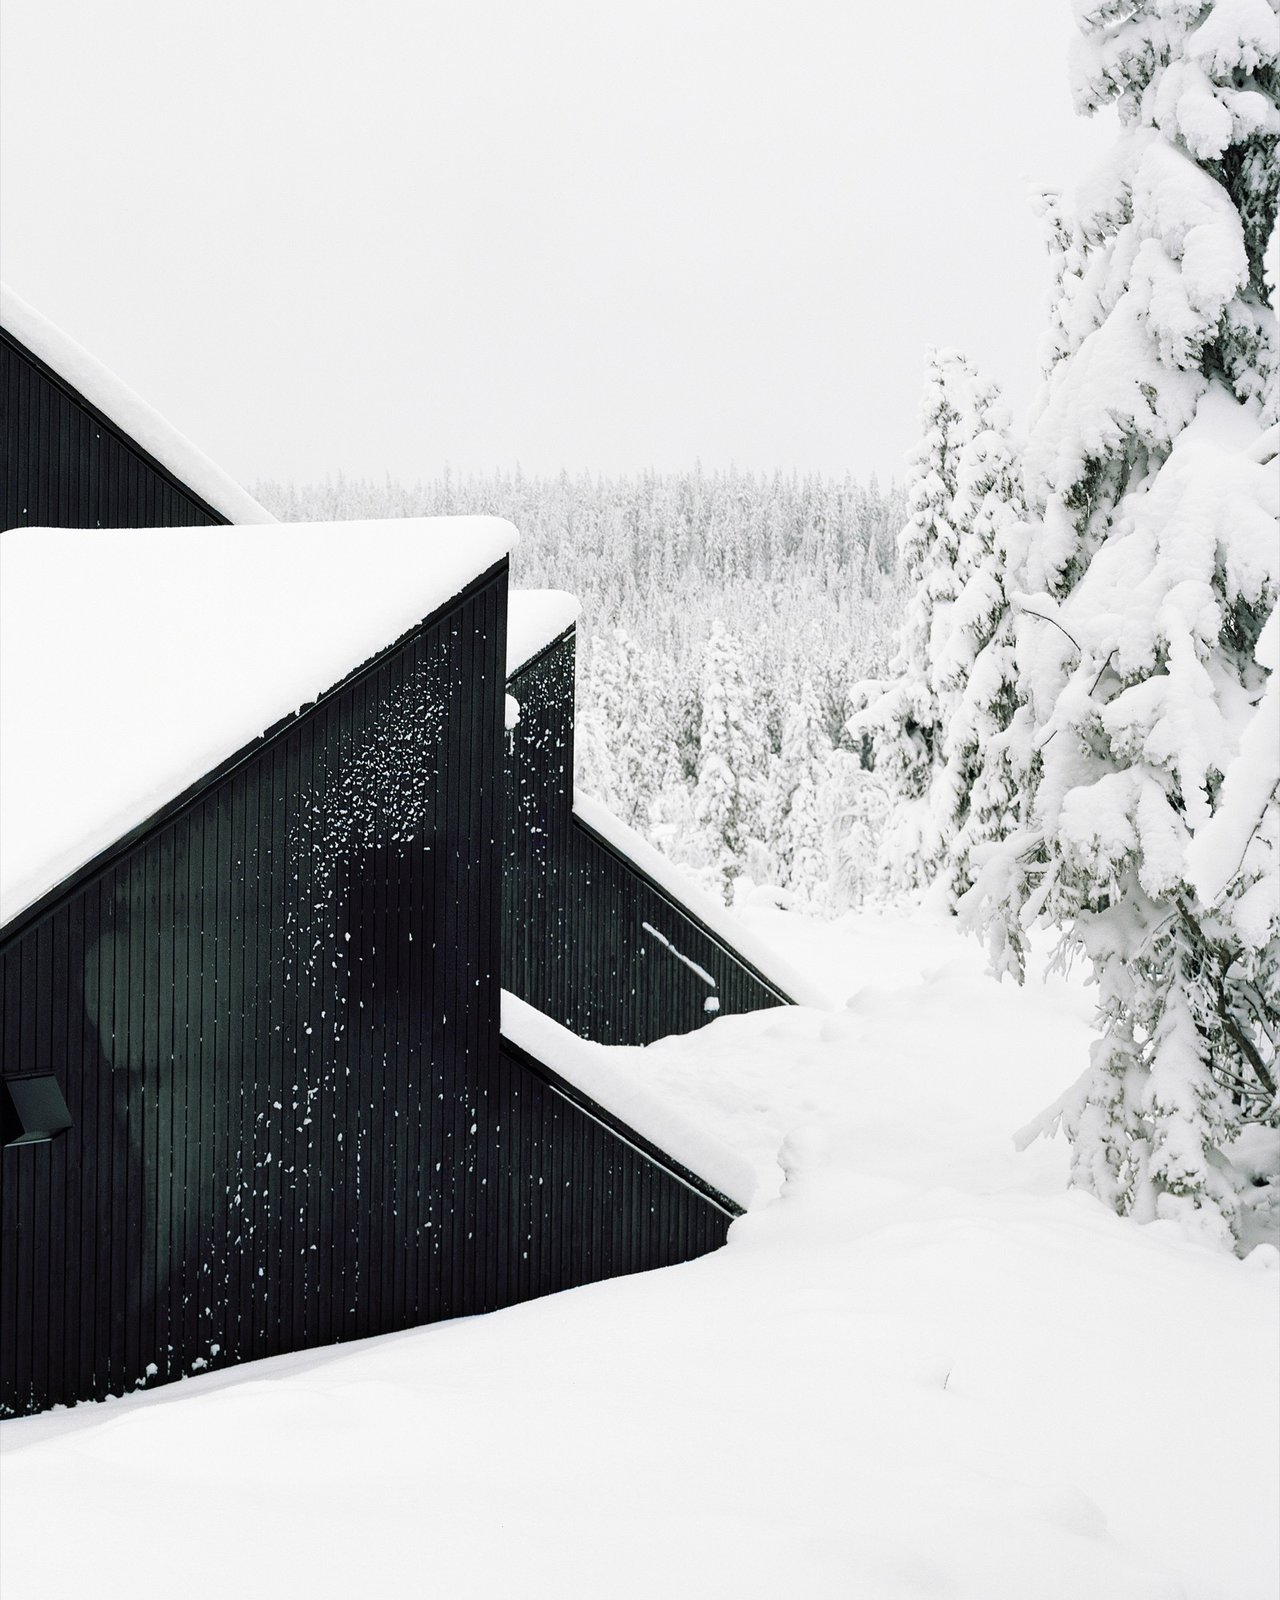 winter by Molly E. Osler, Interior Design from The Vindheim Cabin: Snowbound in Norway